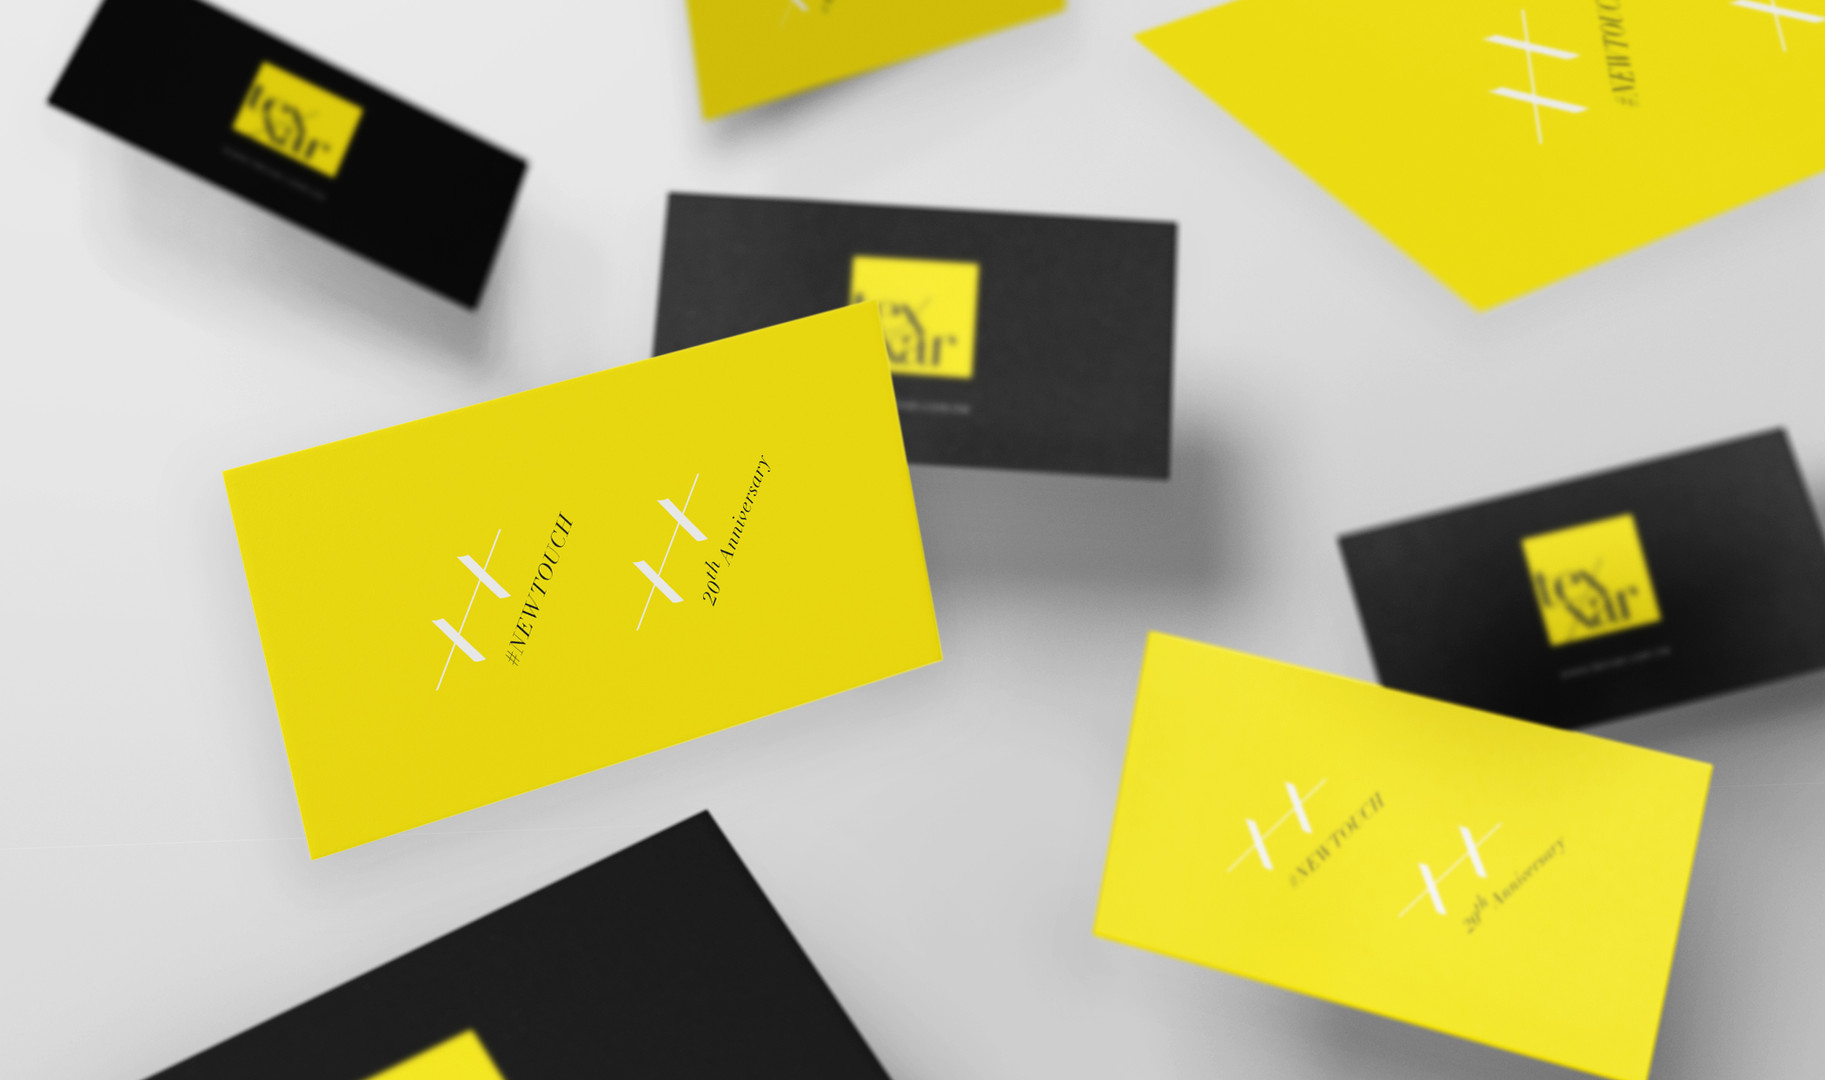 Flying_Business_Cards_Mockup.jpg